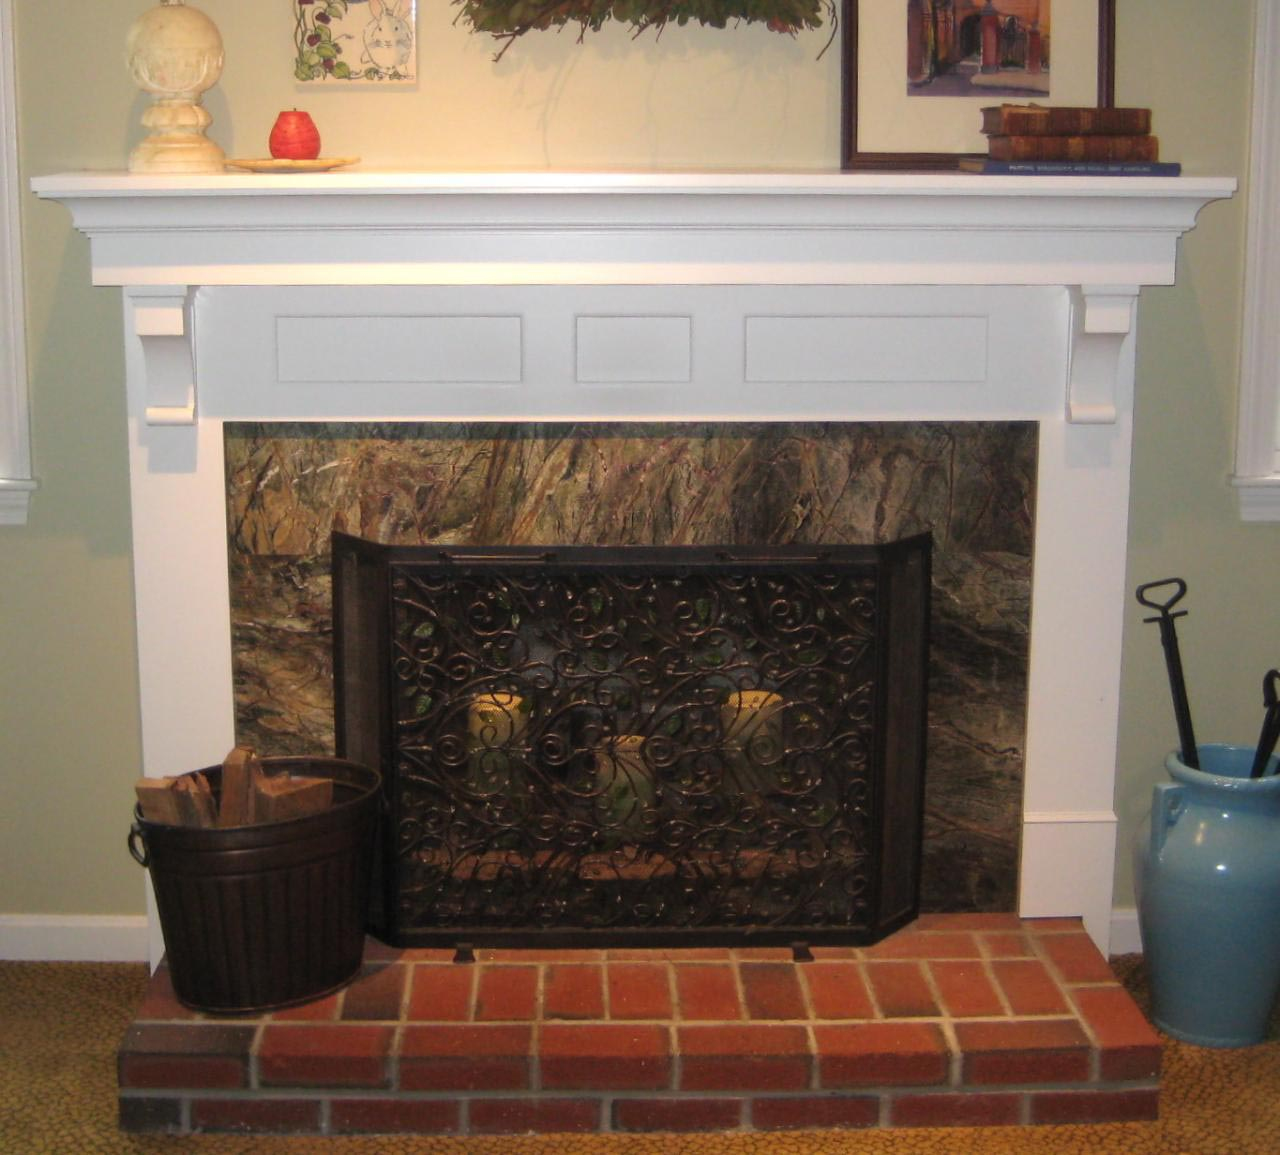 Diy fireplace mantel kits fireplace designs for How to design a fireplace mantel